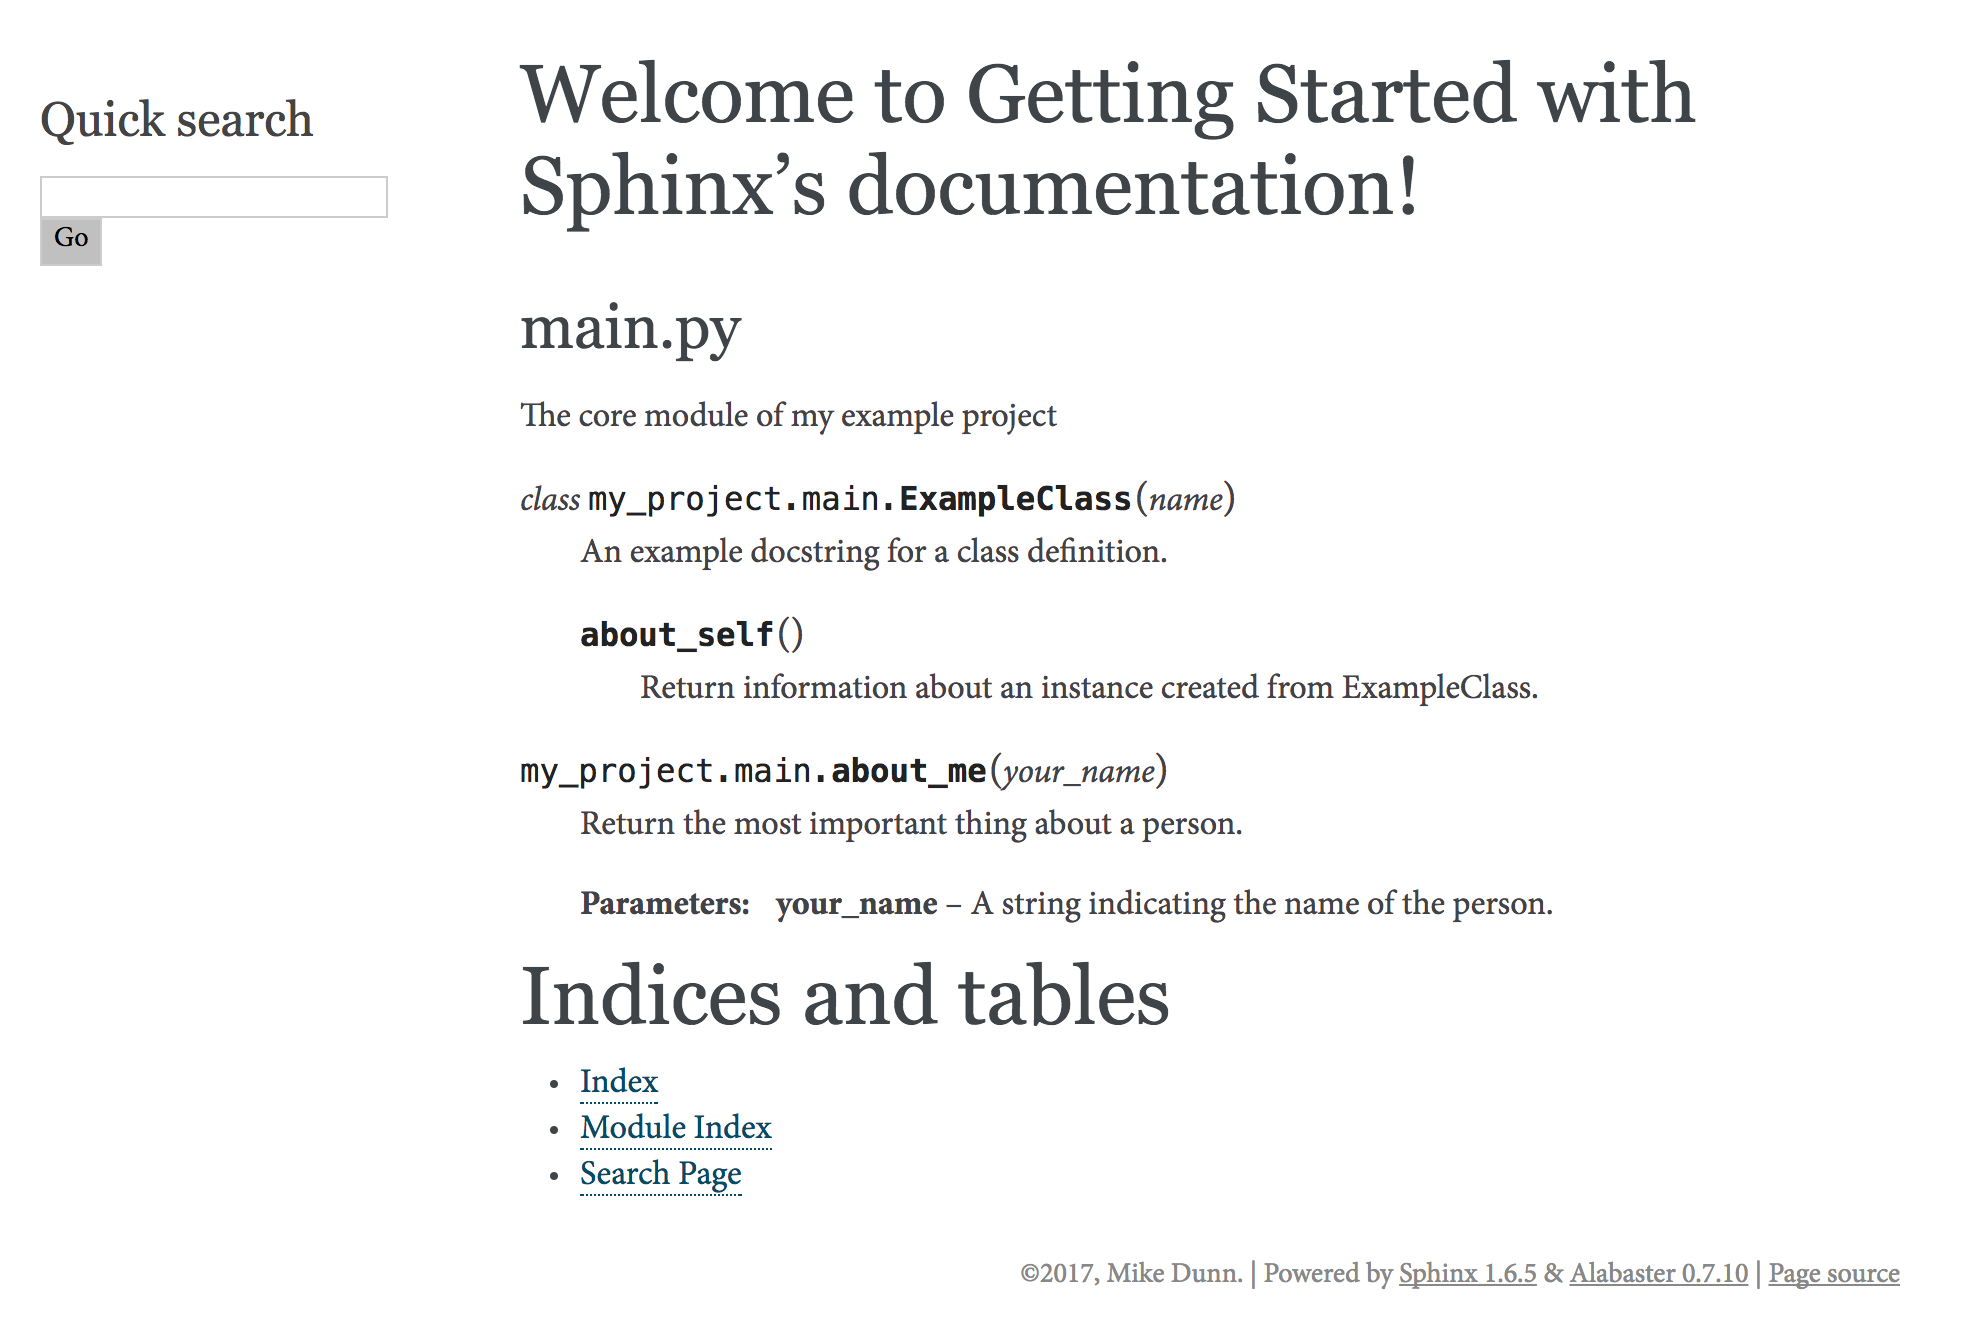 Getting Started with Sphinx / Autodoc: Part 1 - Michael Dunn